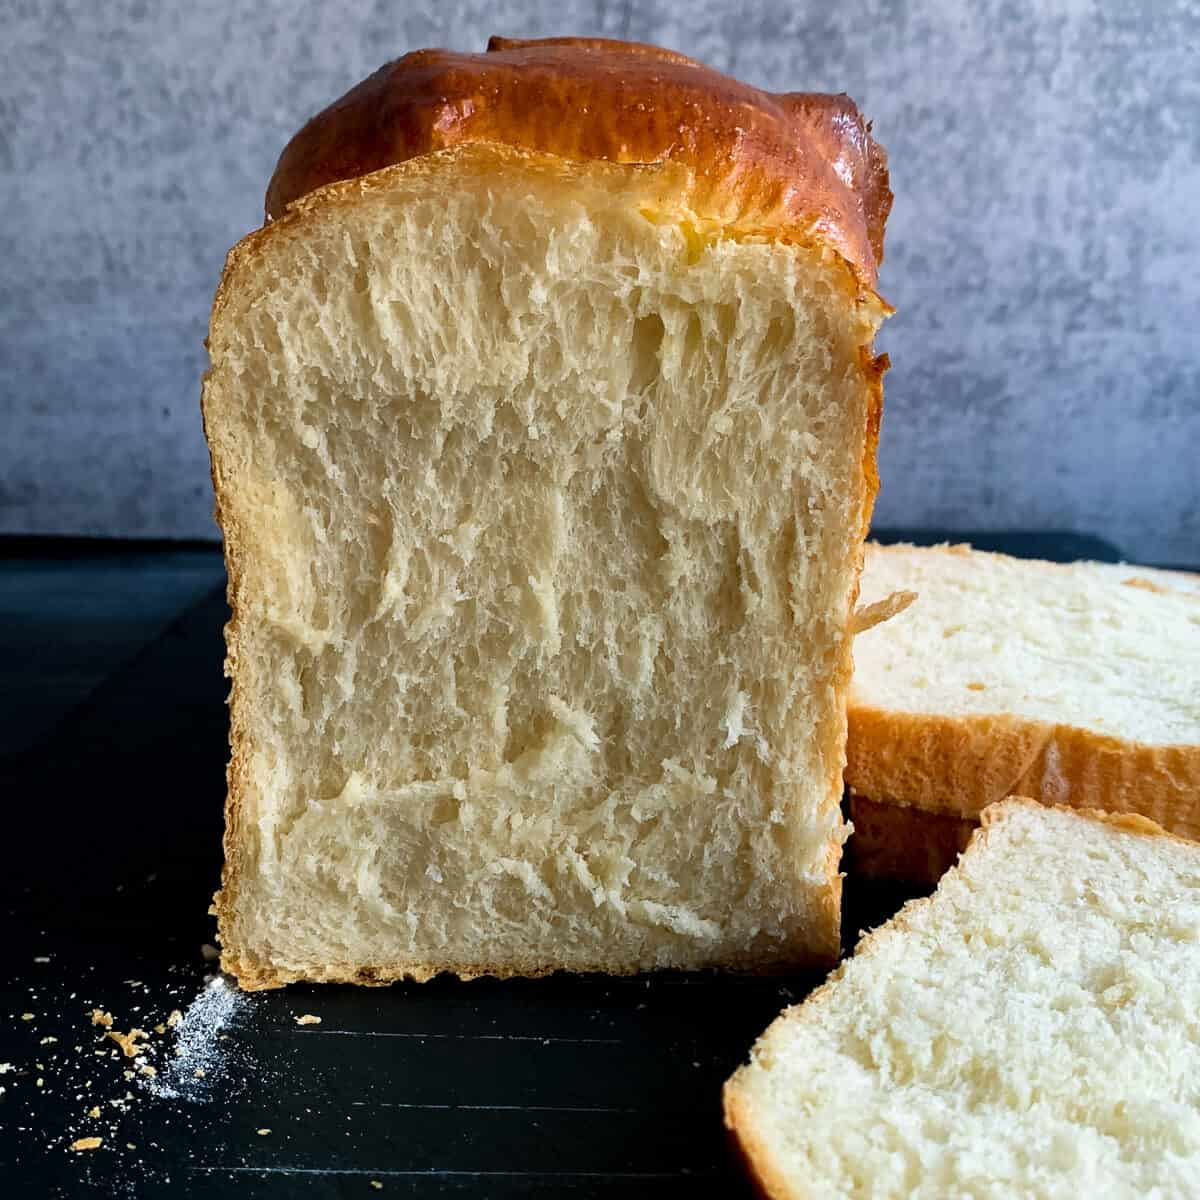 crumb of shokupan bread is shreddably soft and fluffy